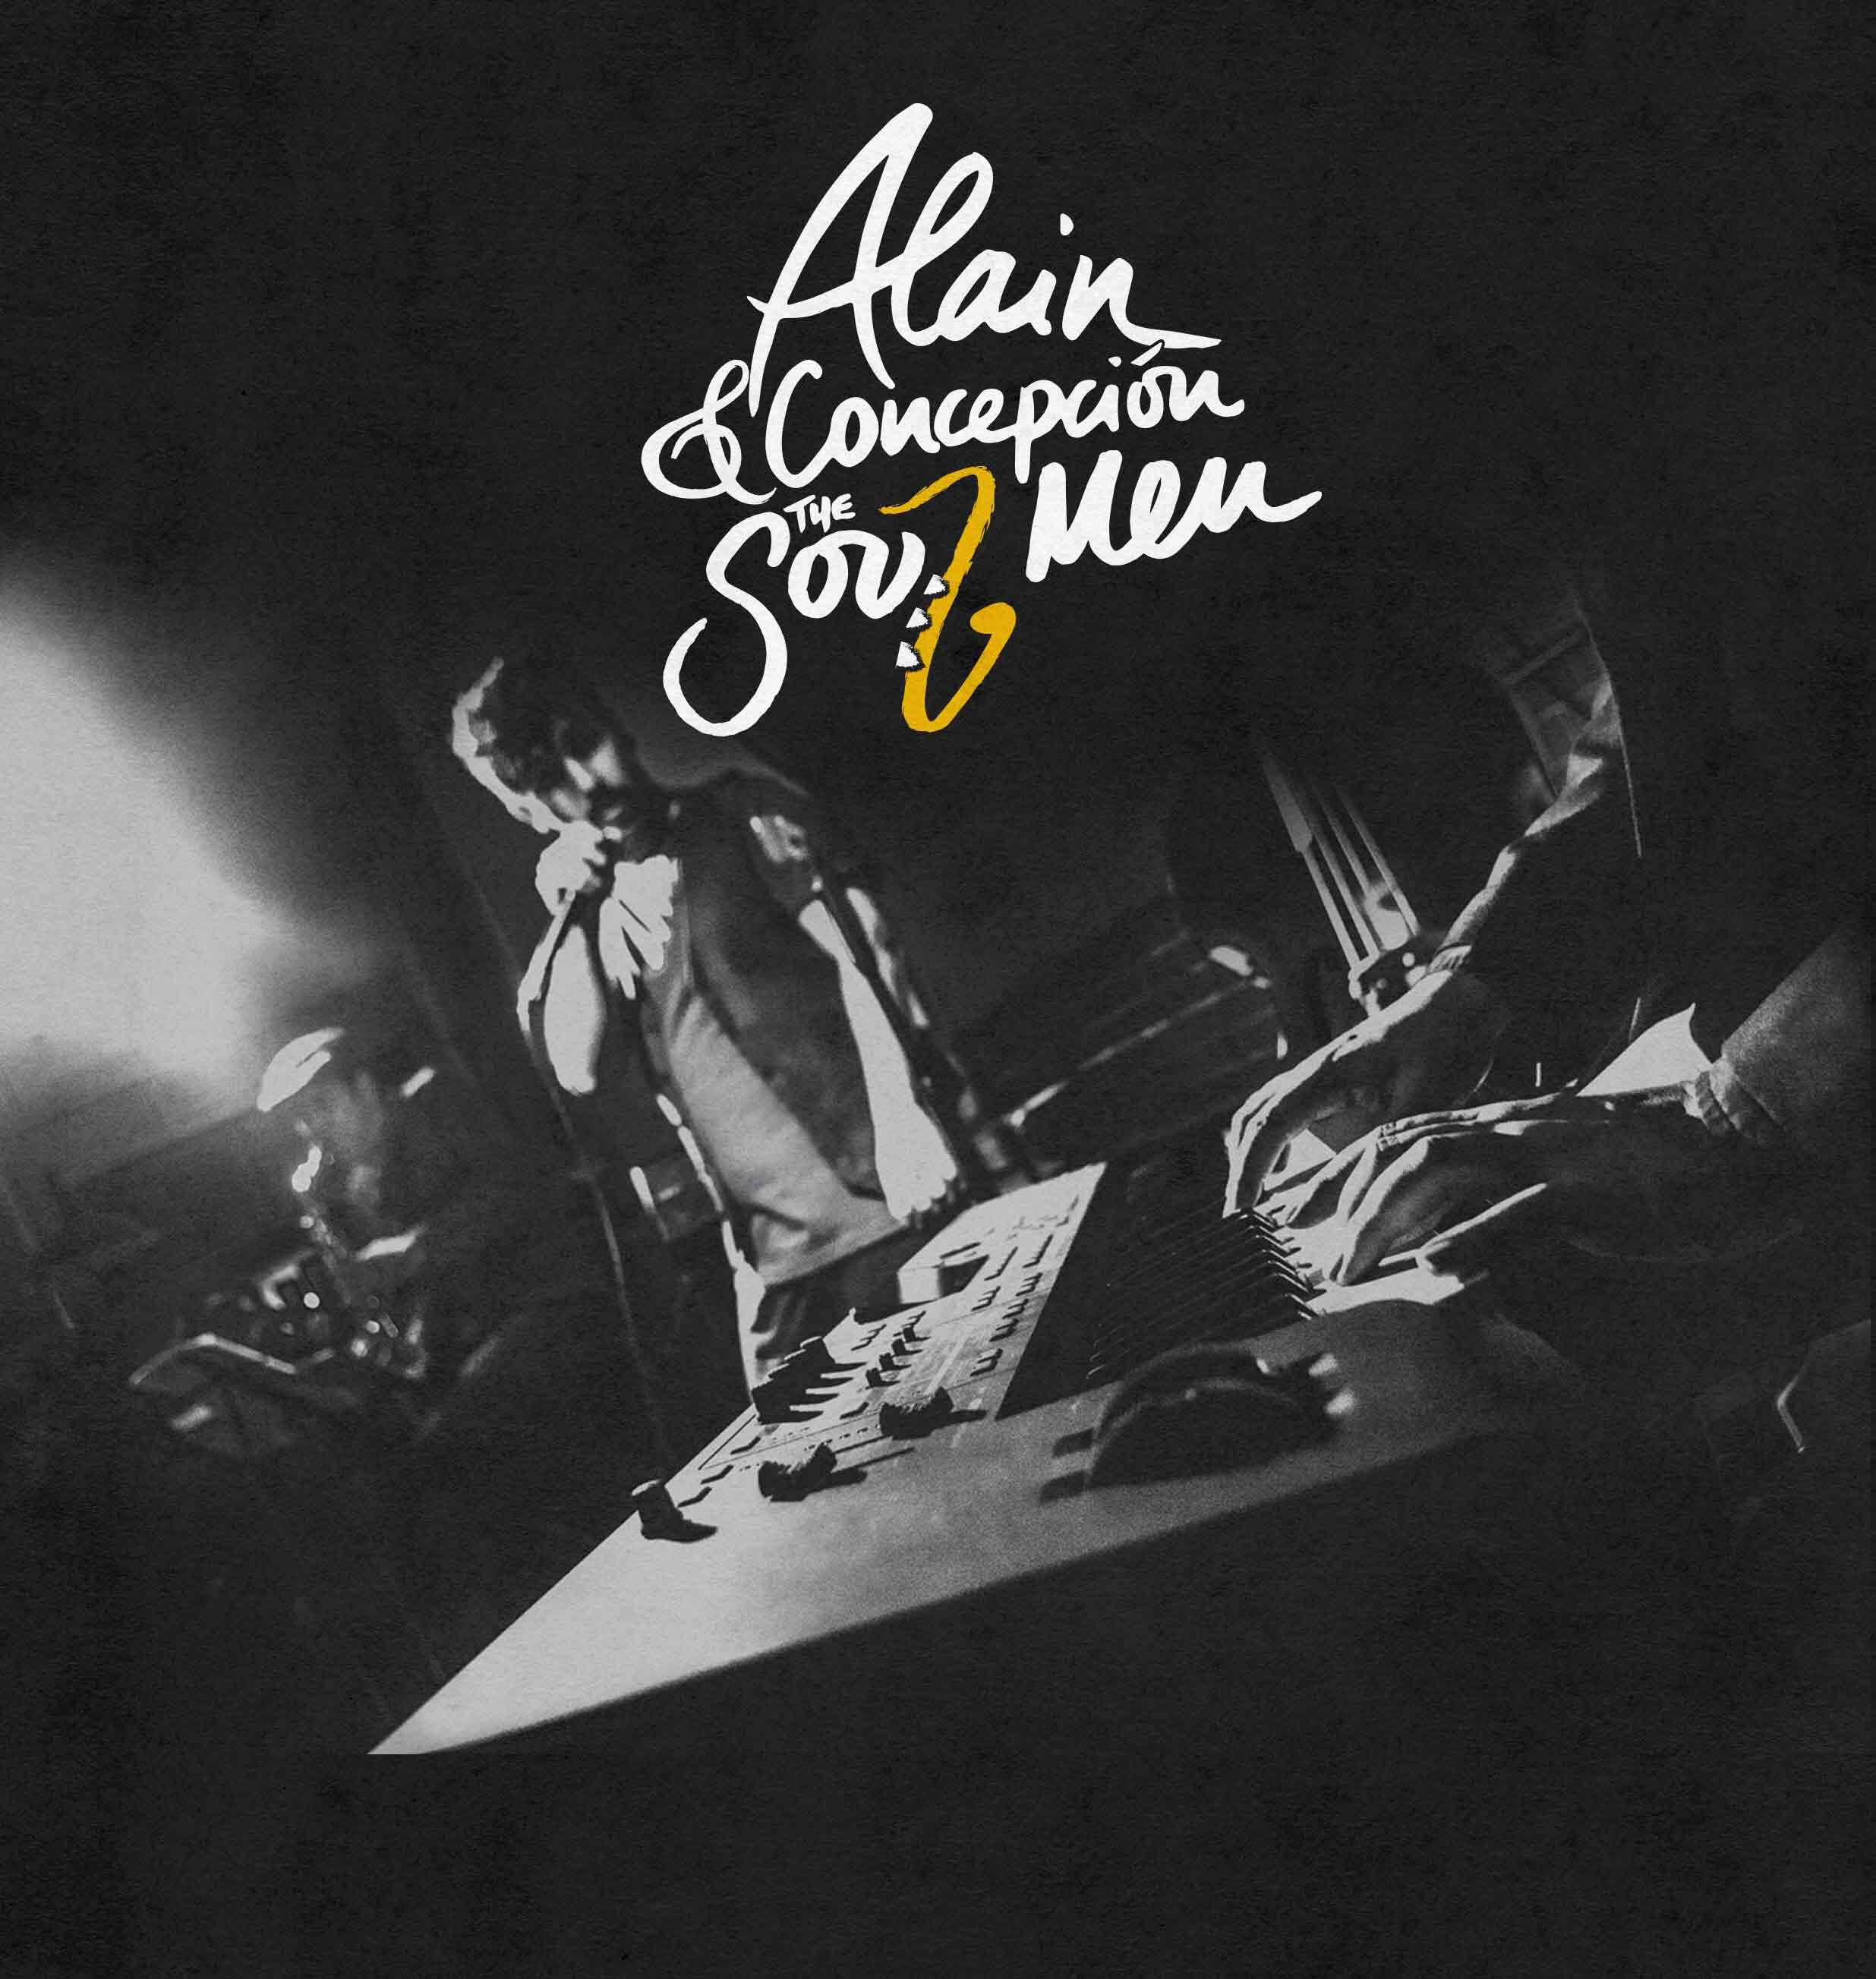 Alain Concepcion and The Soul Man